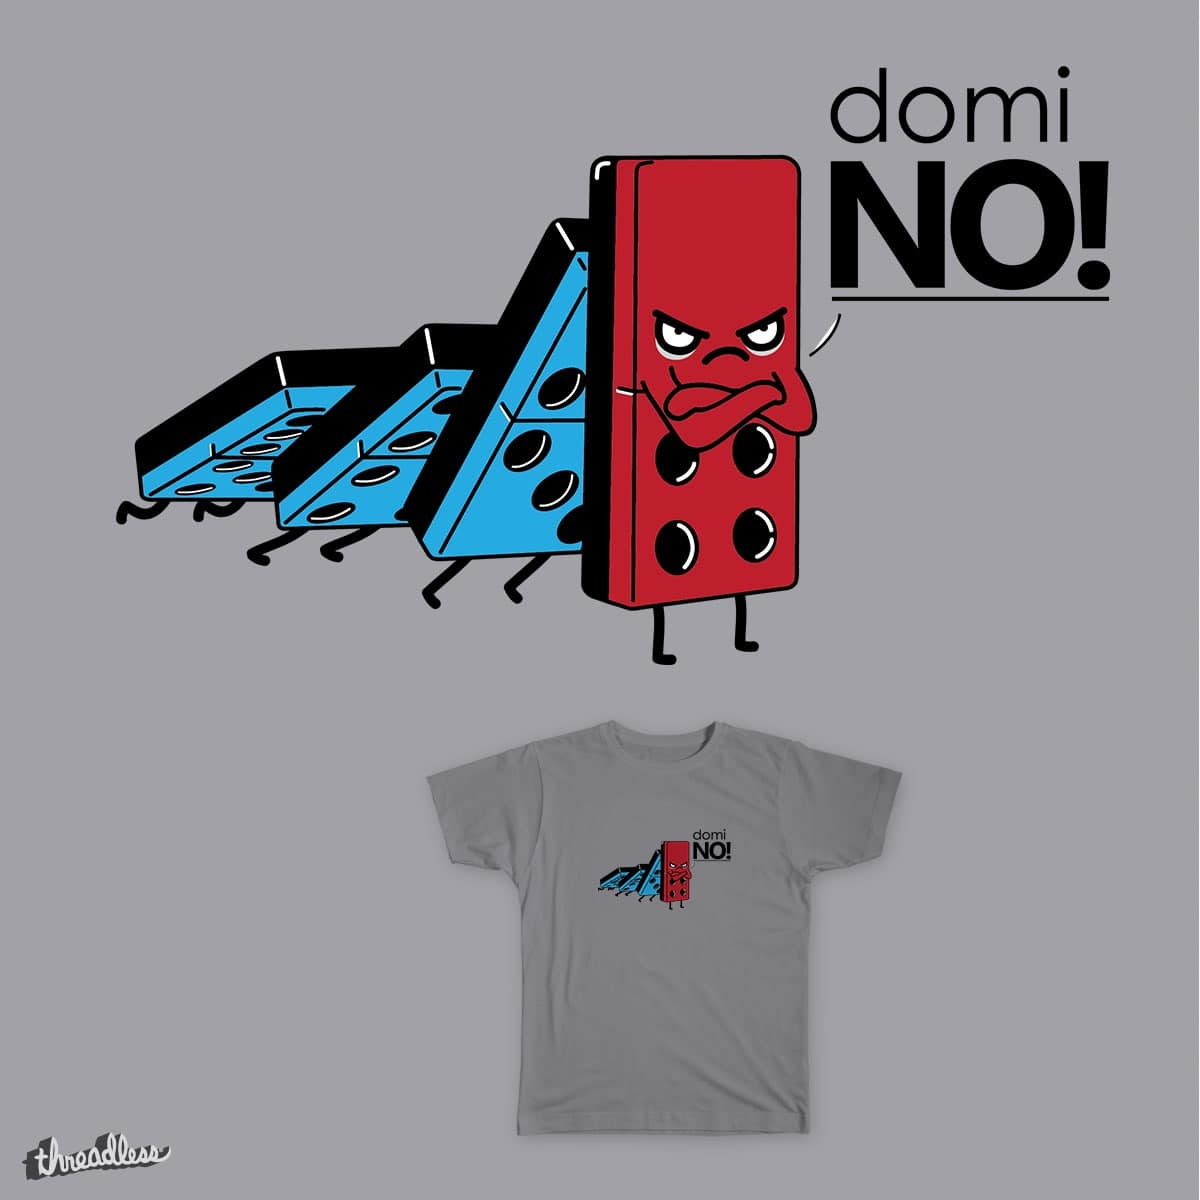 Domi...NO! by Jacosen on Threadless